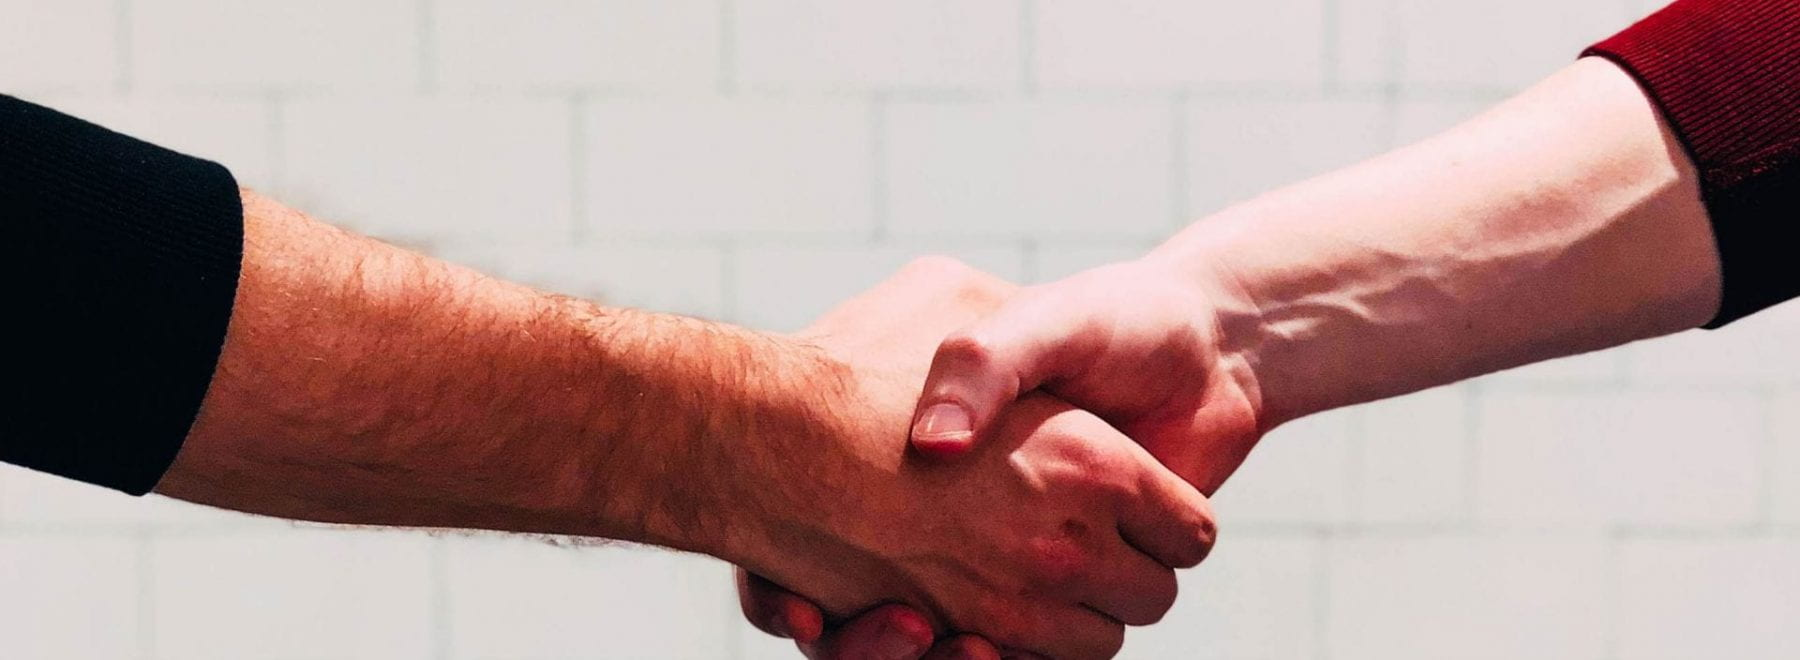 Two men shaking hands in front of a white wall